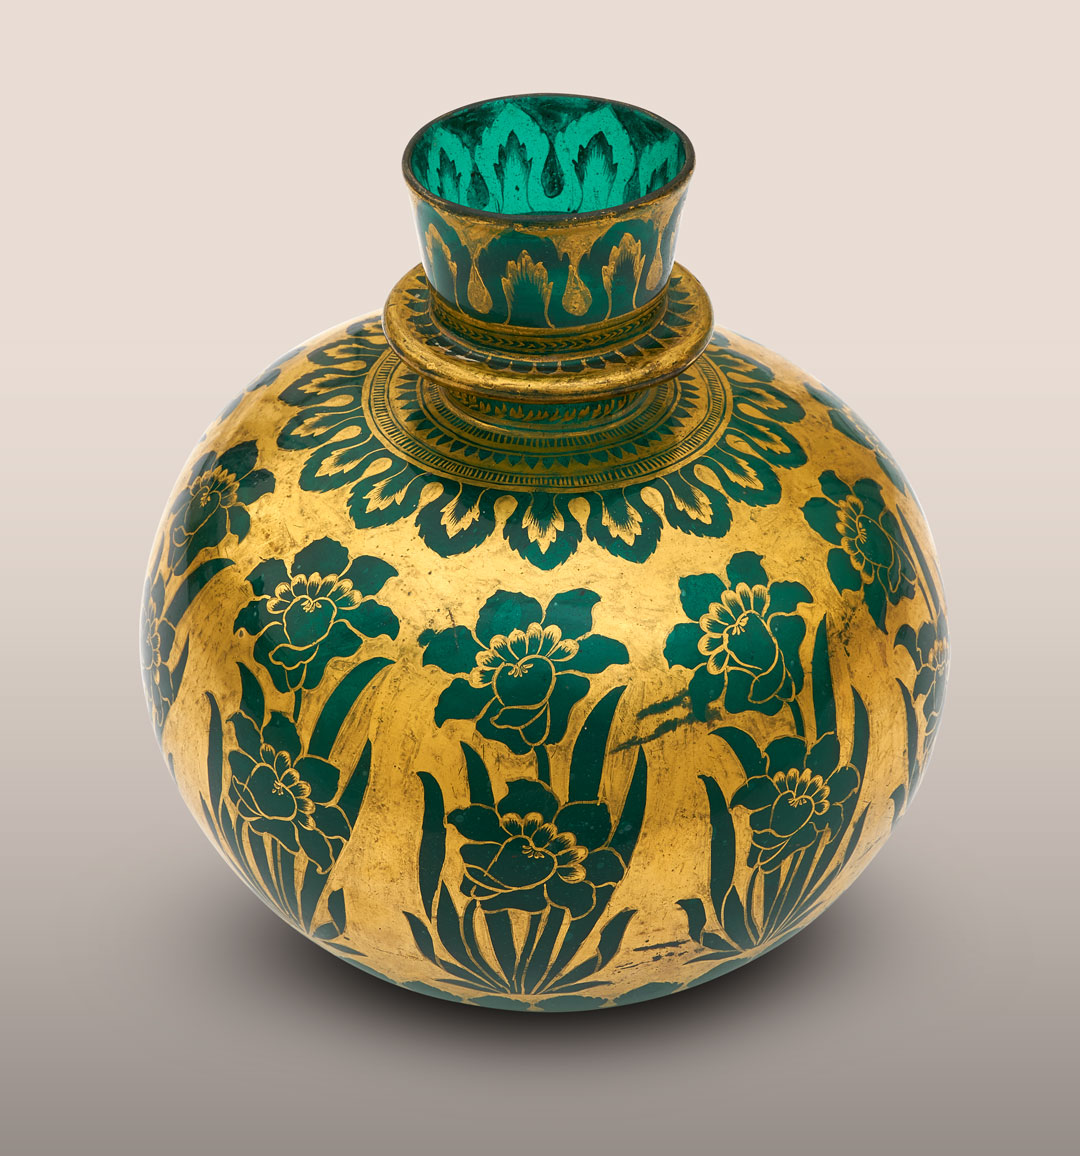 Huqqa (Water Pipe) Base, early 18th century